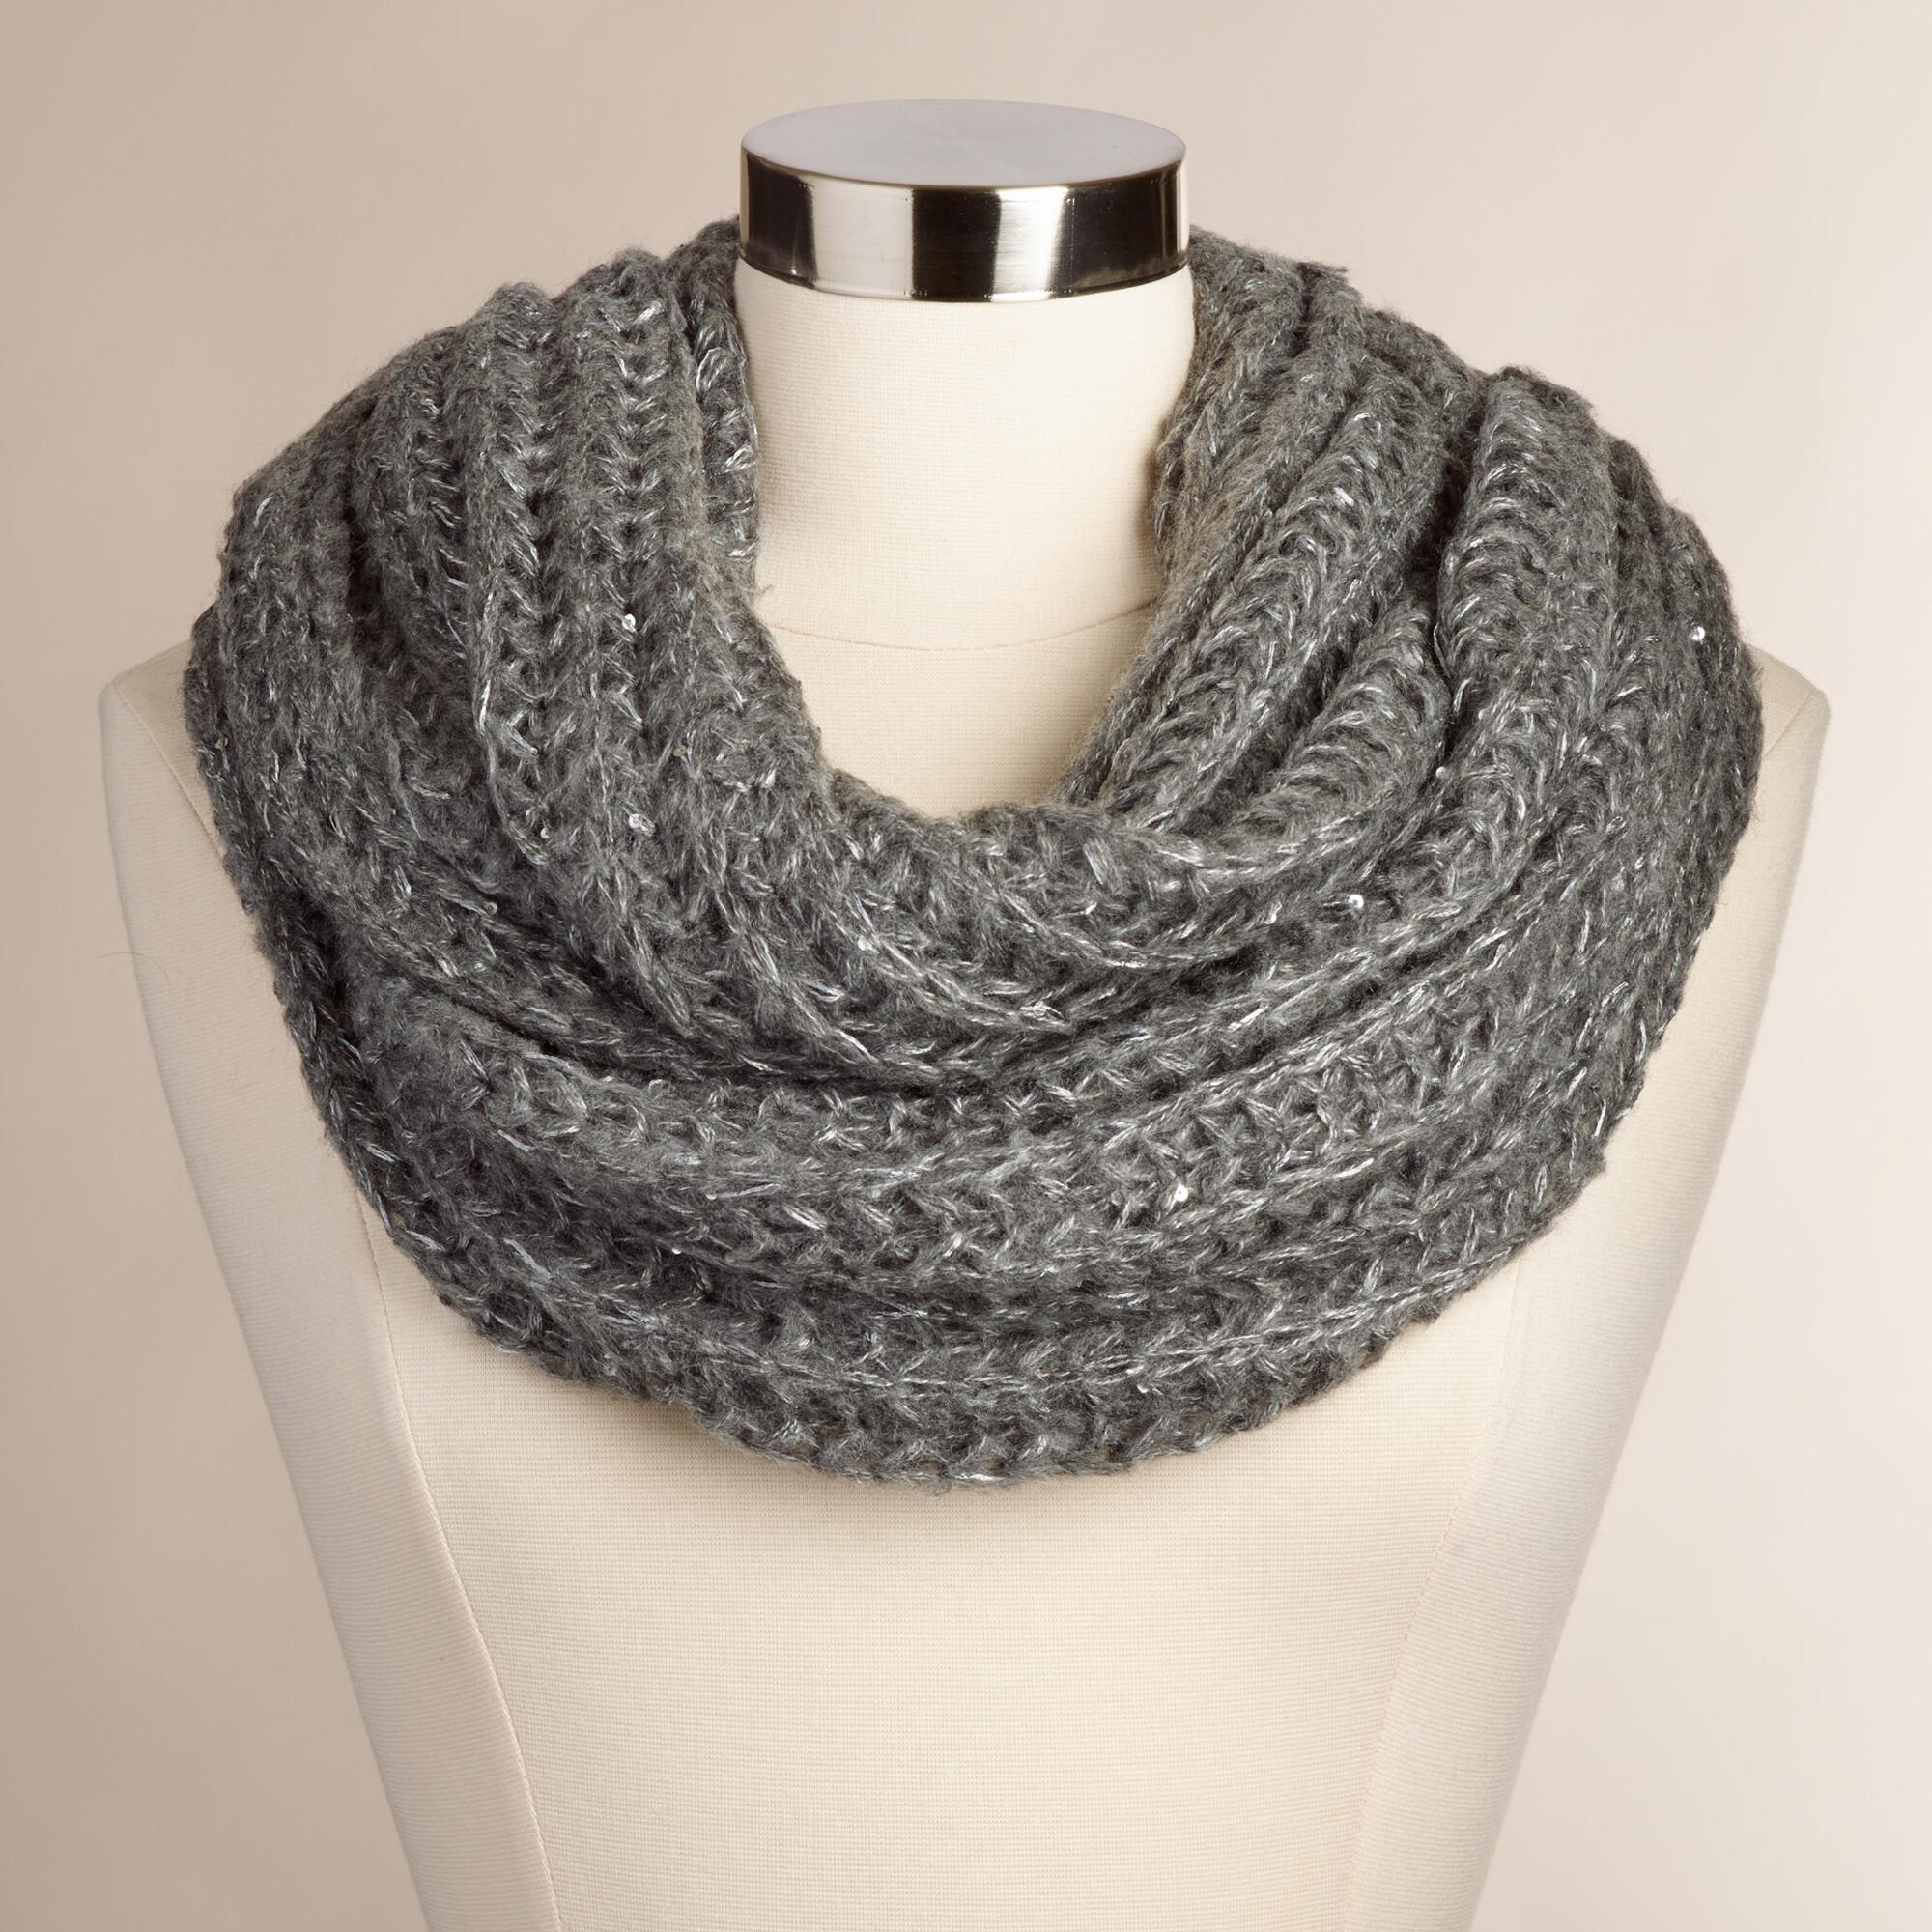 Add a little glam to your cozy with this lurex mix knit tassel infinity scarf in gray!